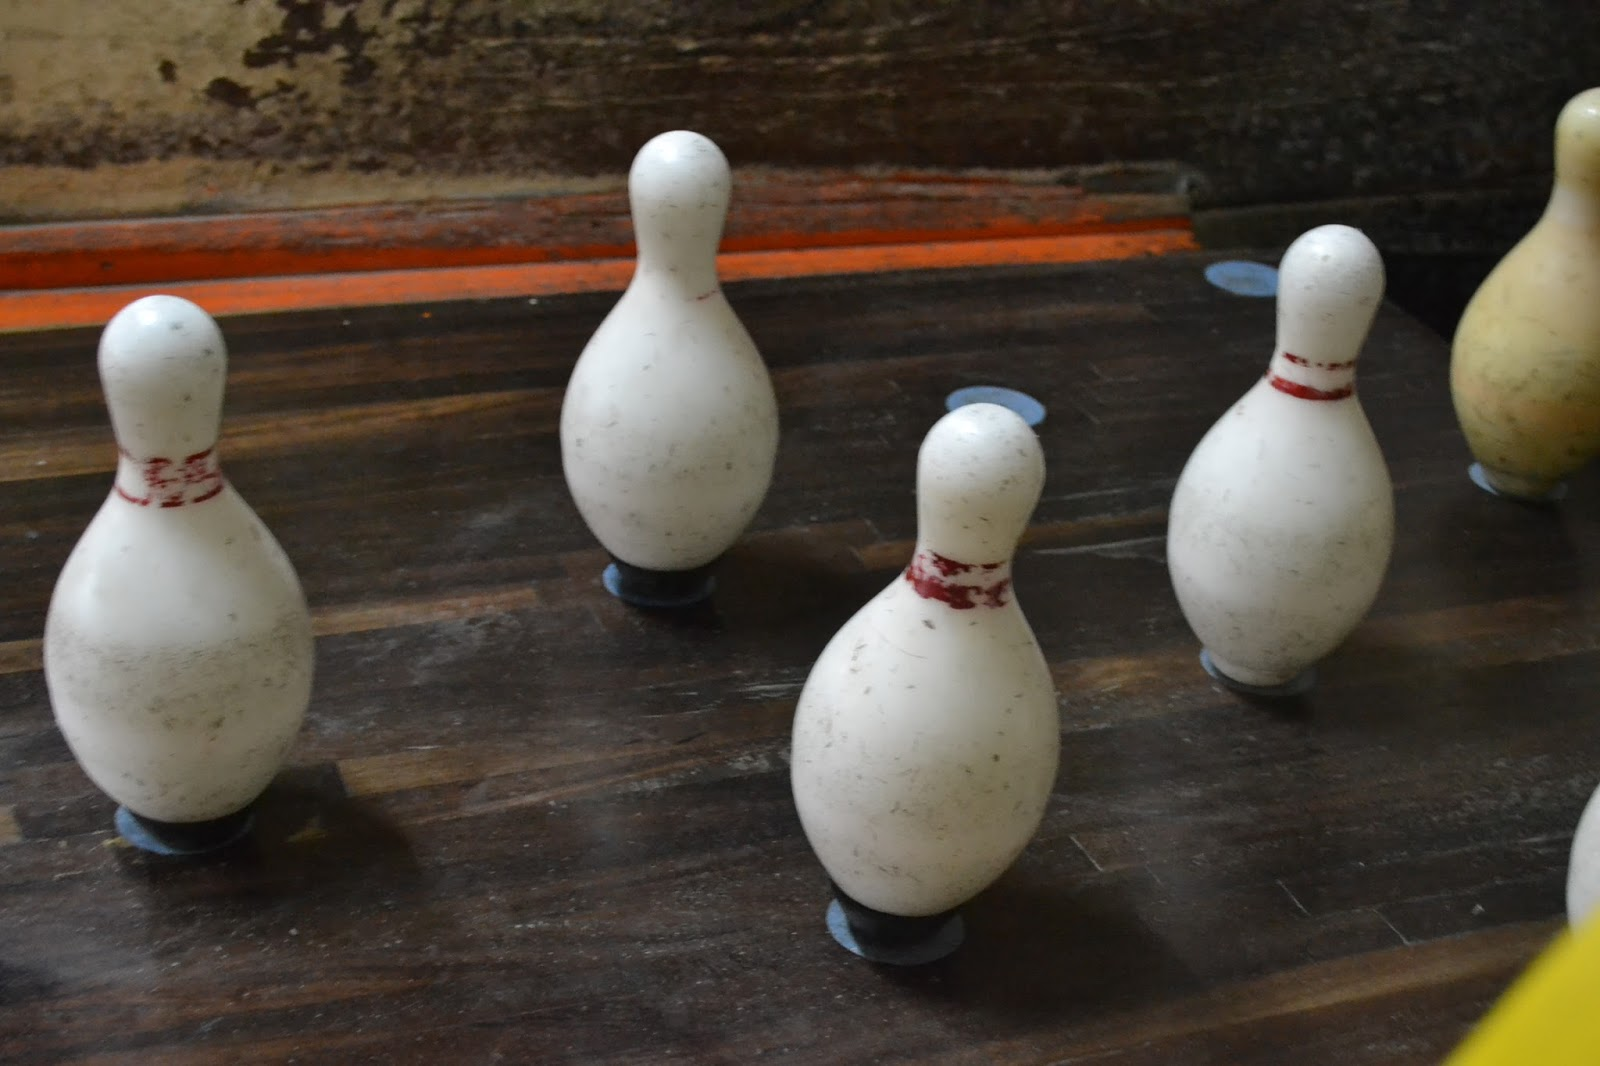 duckpin bowling pavements are runways